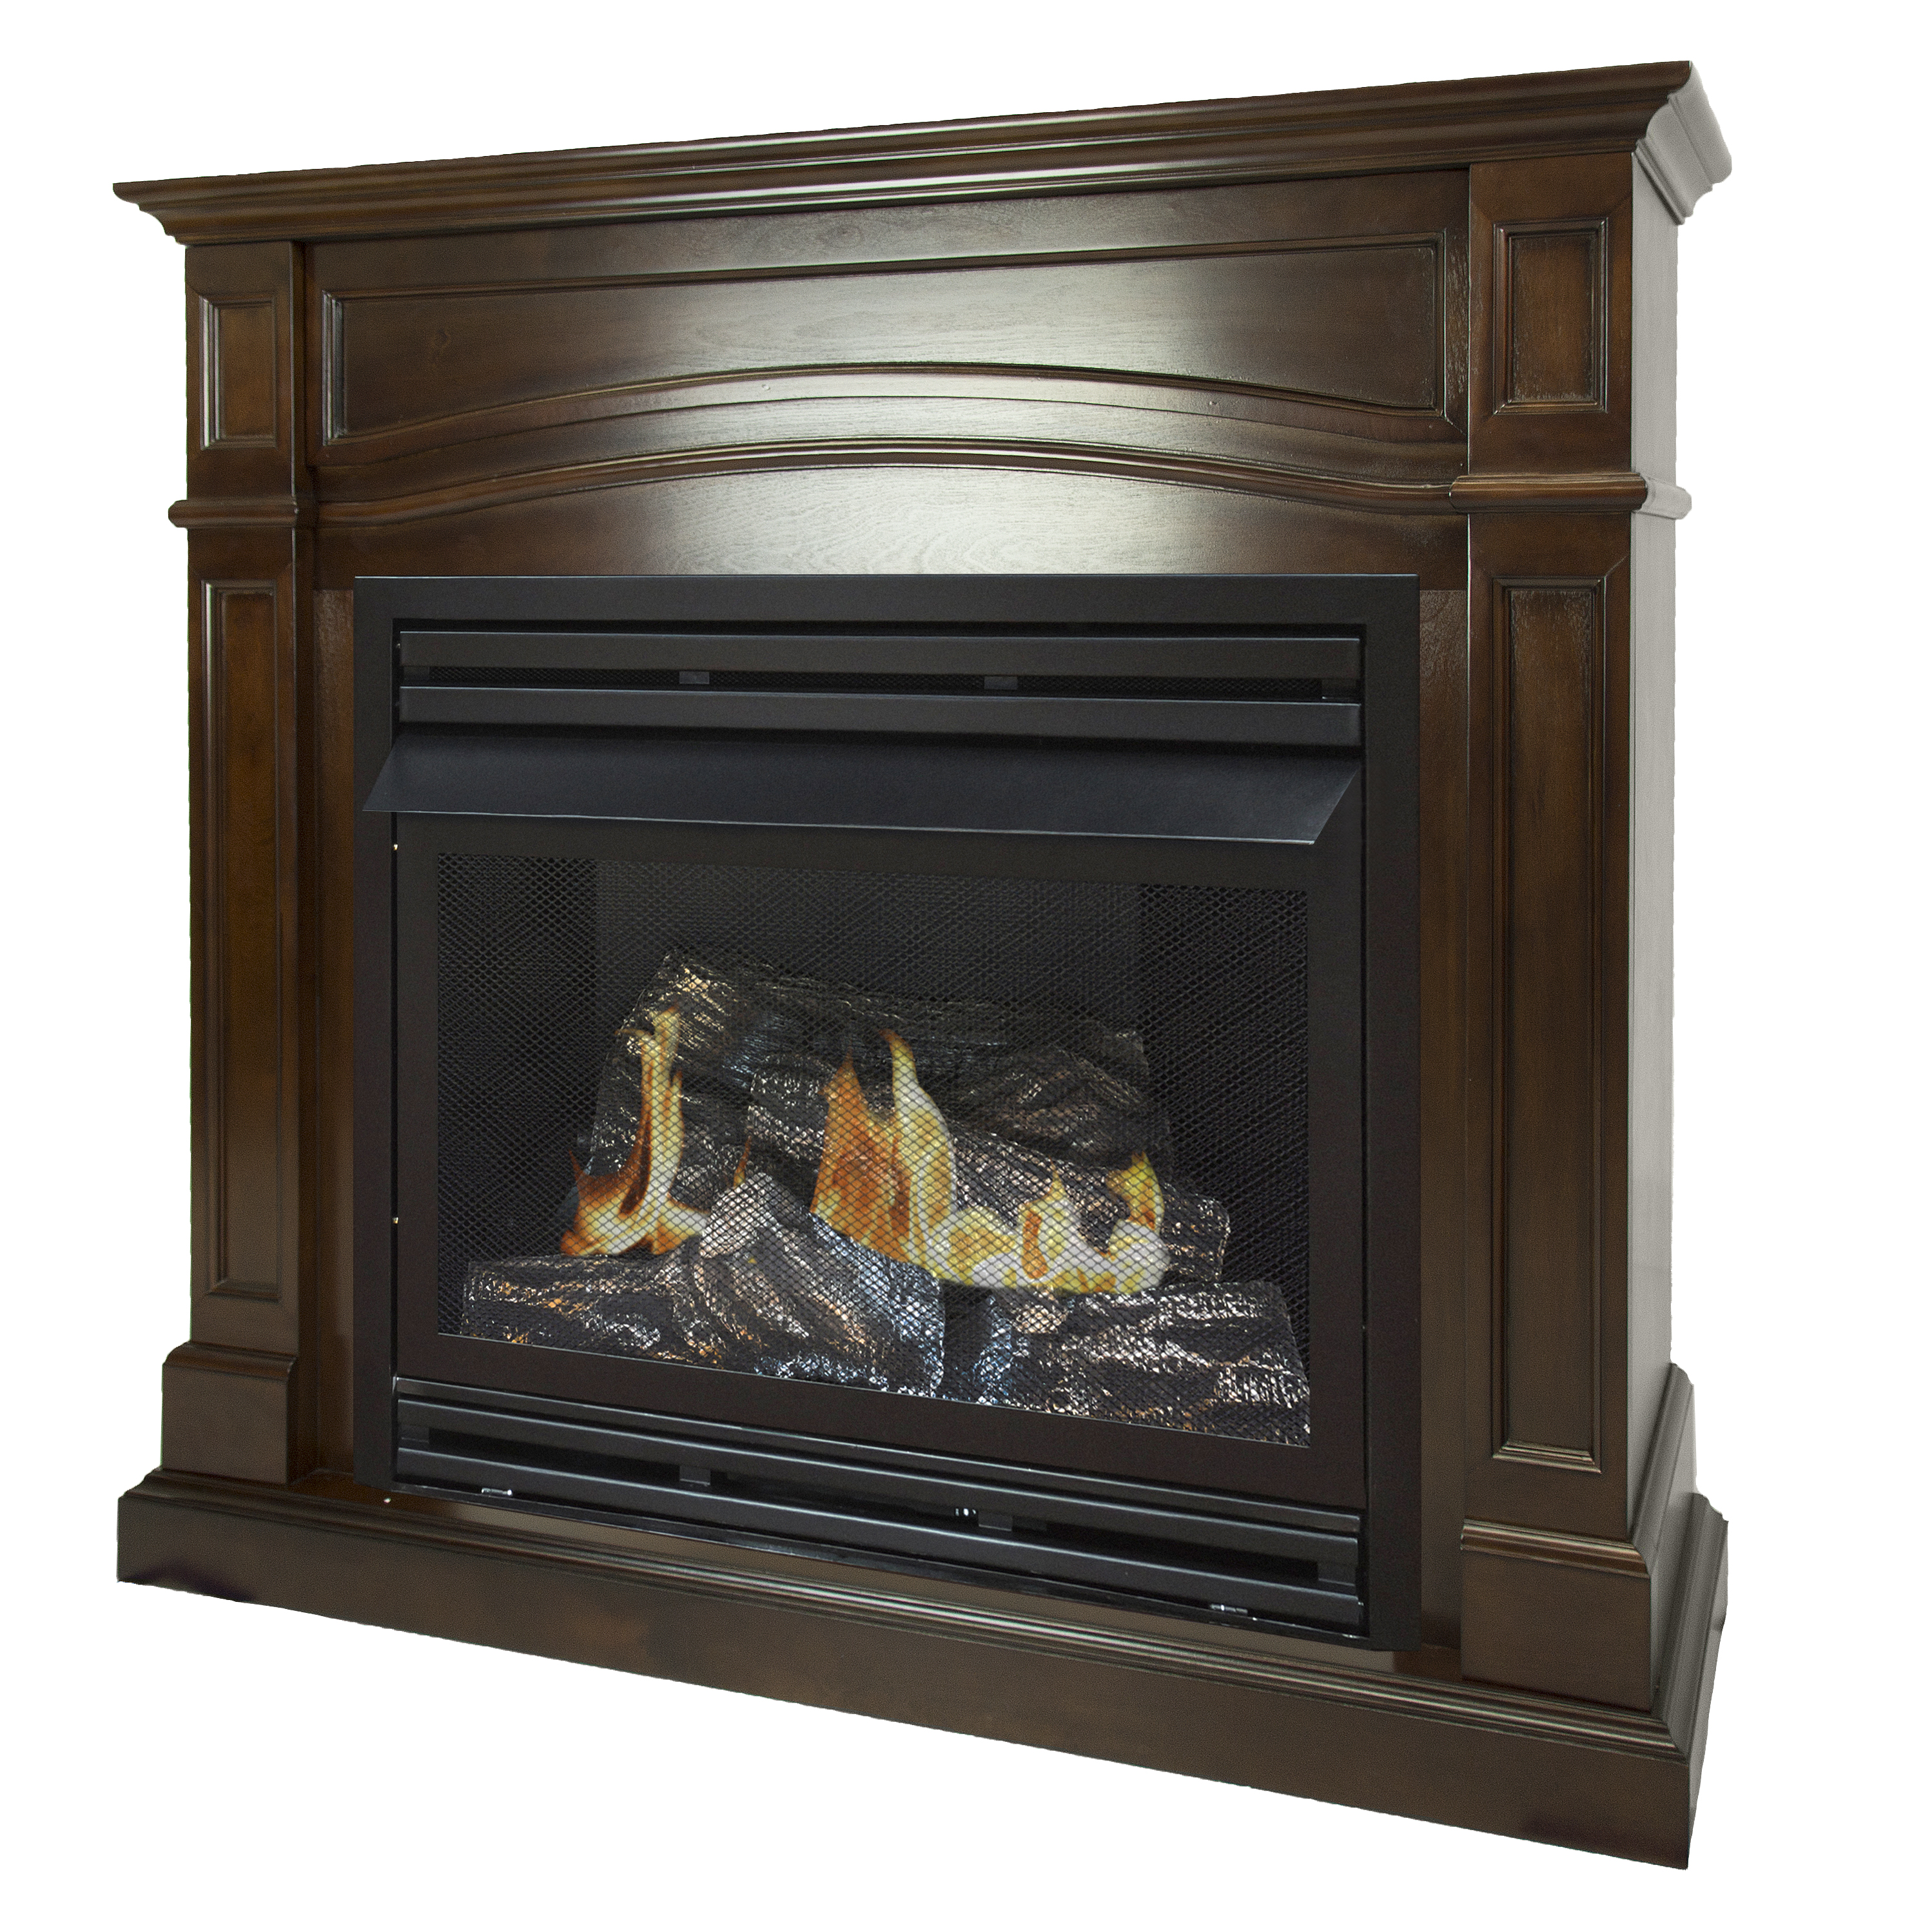 Mendota Fireplace Price List Inspirational Pleasant Hearth 46 In Natural Gas Full Size Cherry Vent Free Fireplace System 32 000 Btu